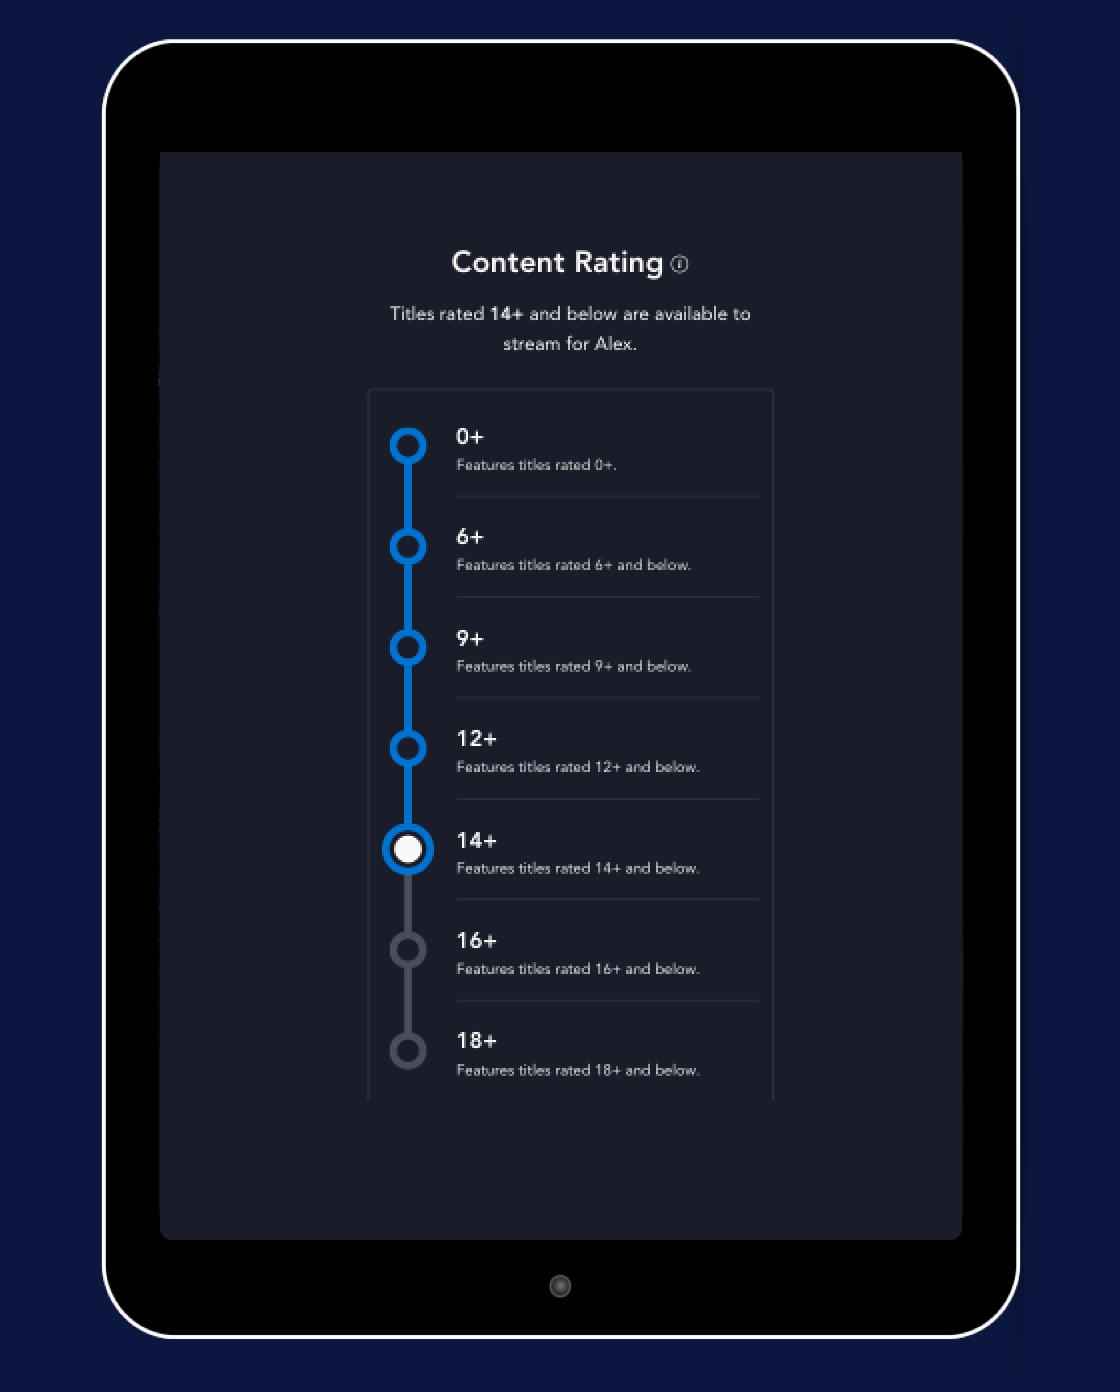 The Disney+ content rating screen in profile settings